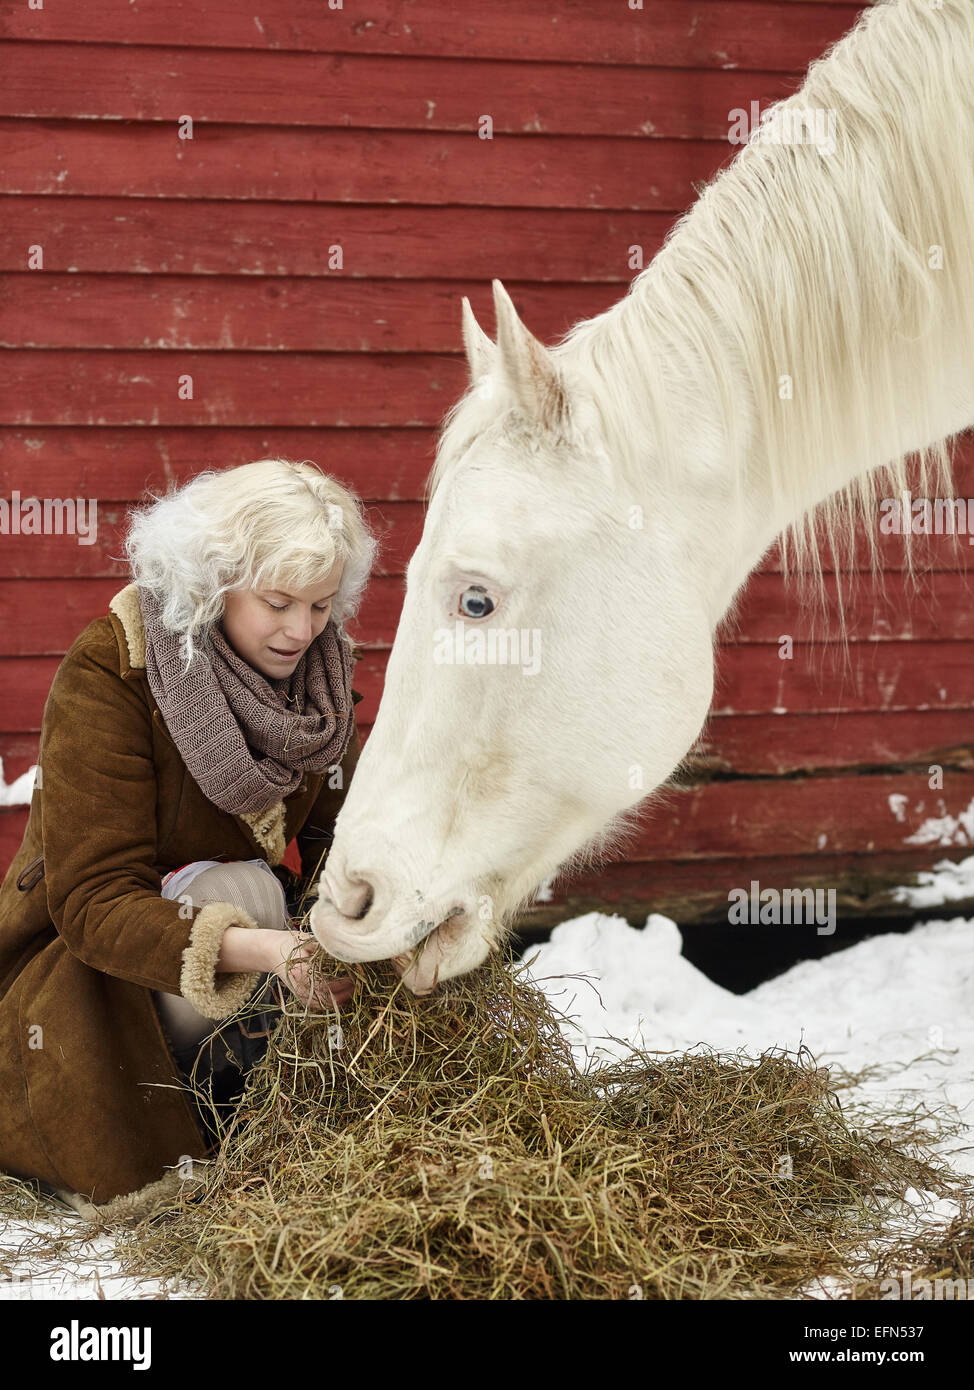 Attractive blond woman feeds a white horse, overcast winter day - Stock Image